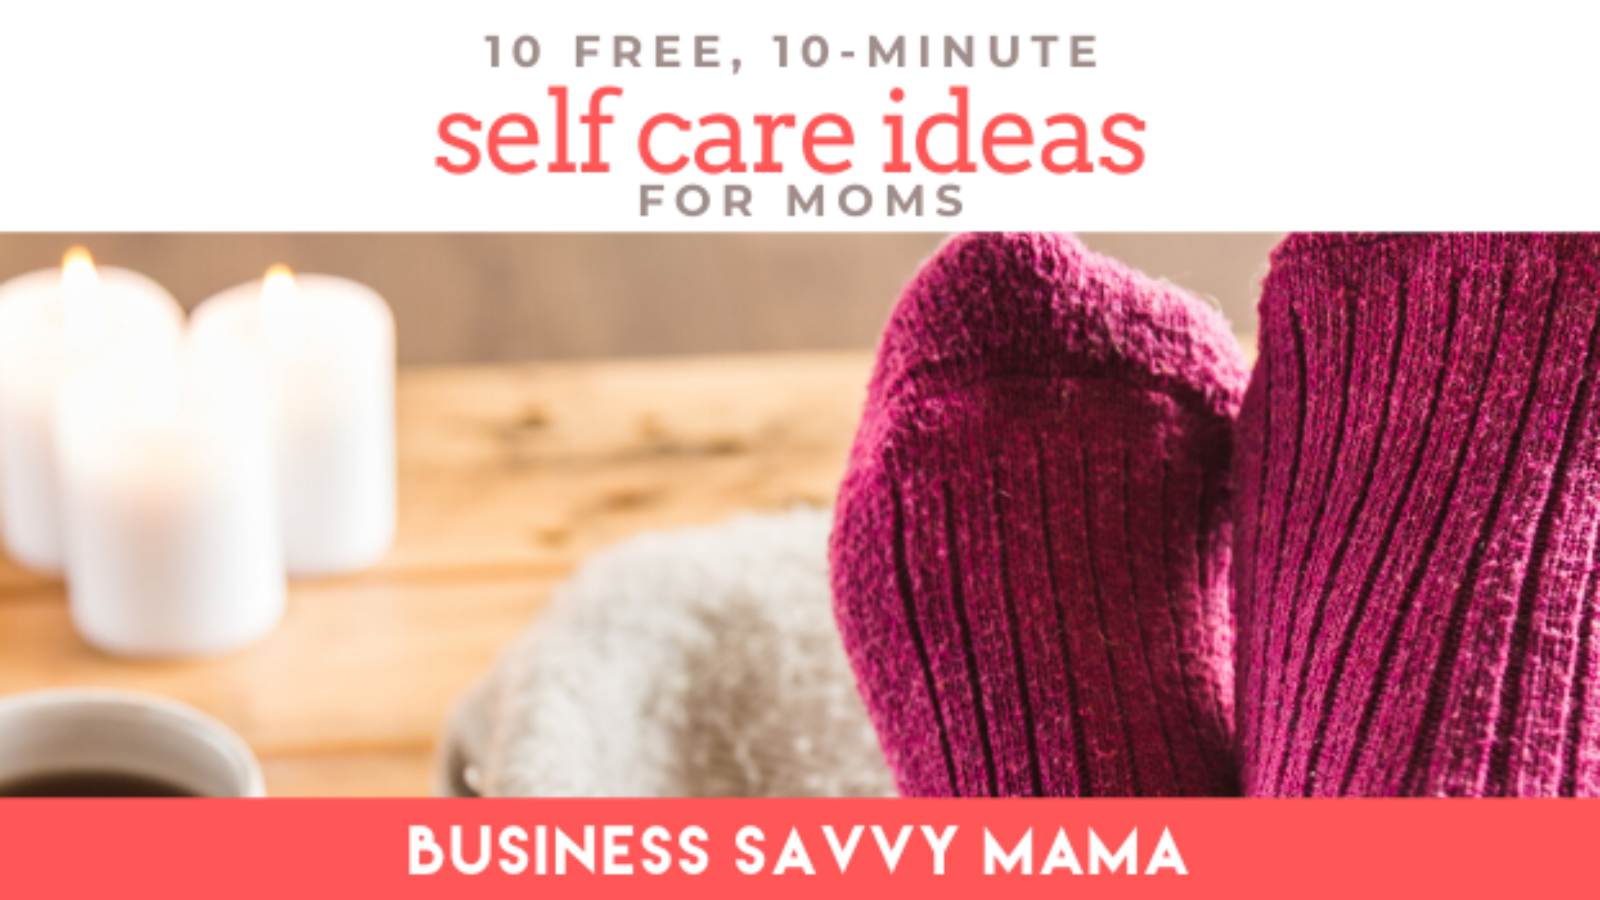 Free Self-Care Ideas for Moms